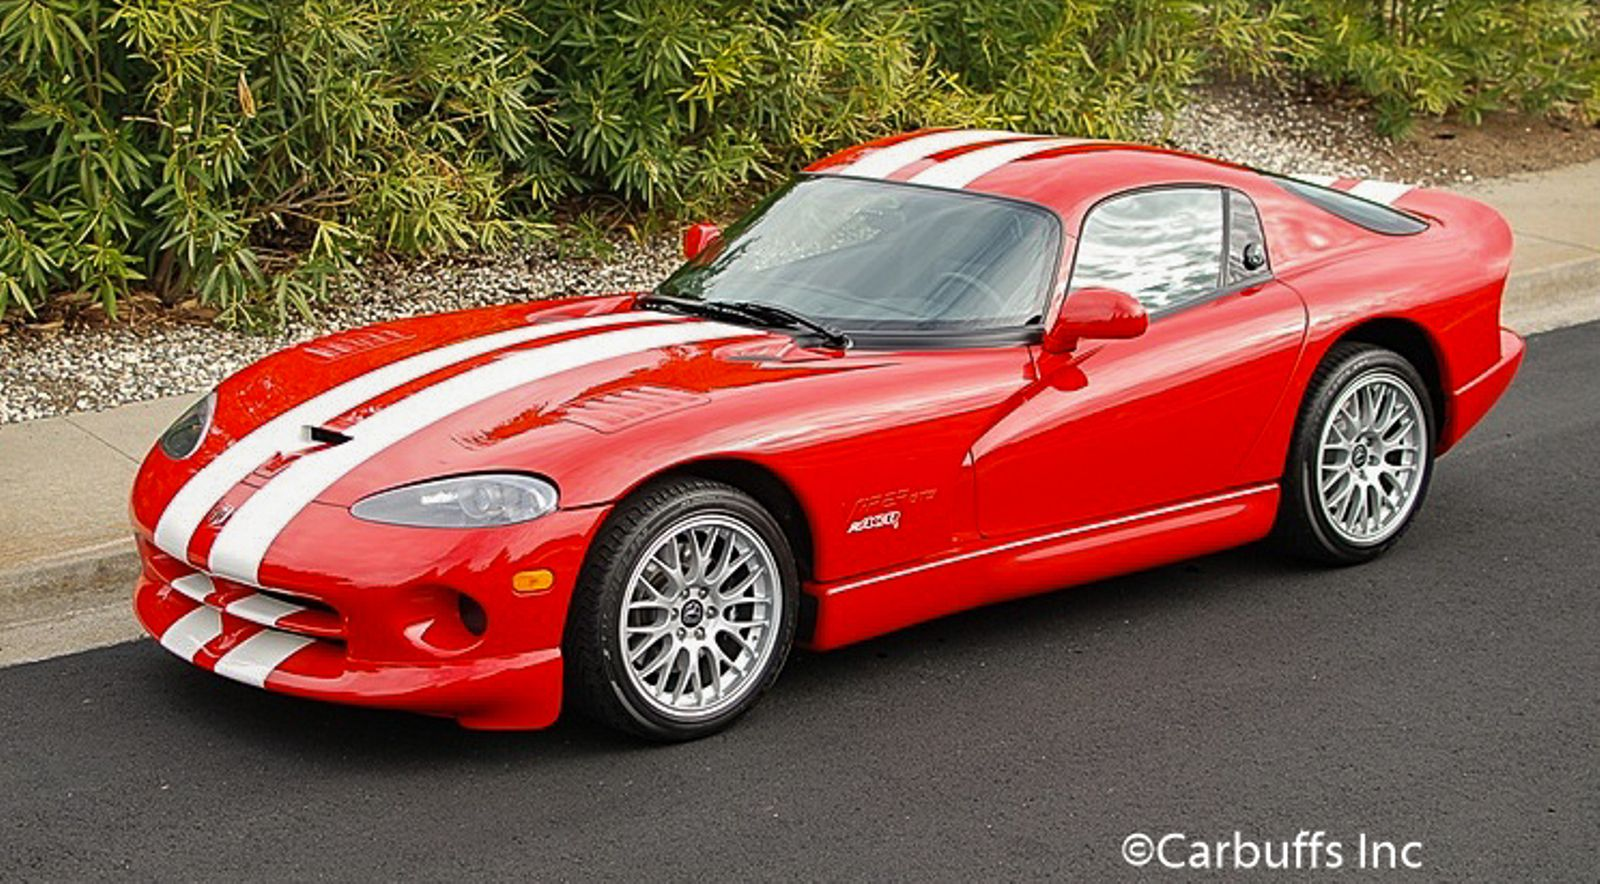 2002 dodge viper gts acr final edition concord ca carbuffs 2002 dodge viper gts acr final edition concord ca carbuffs in concord publicscrutiny Choice Image